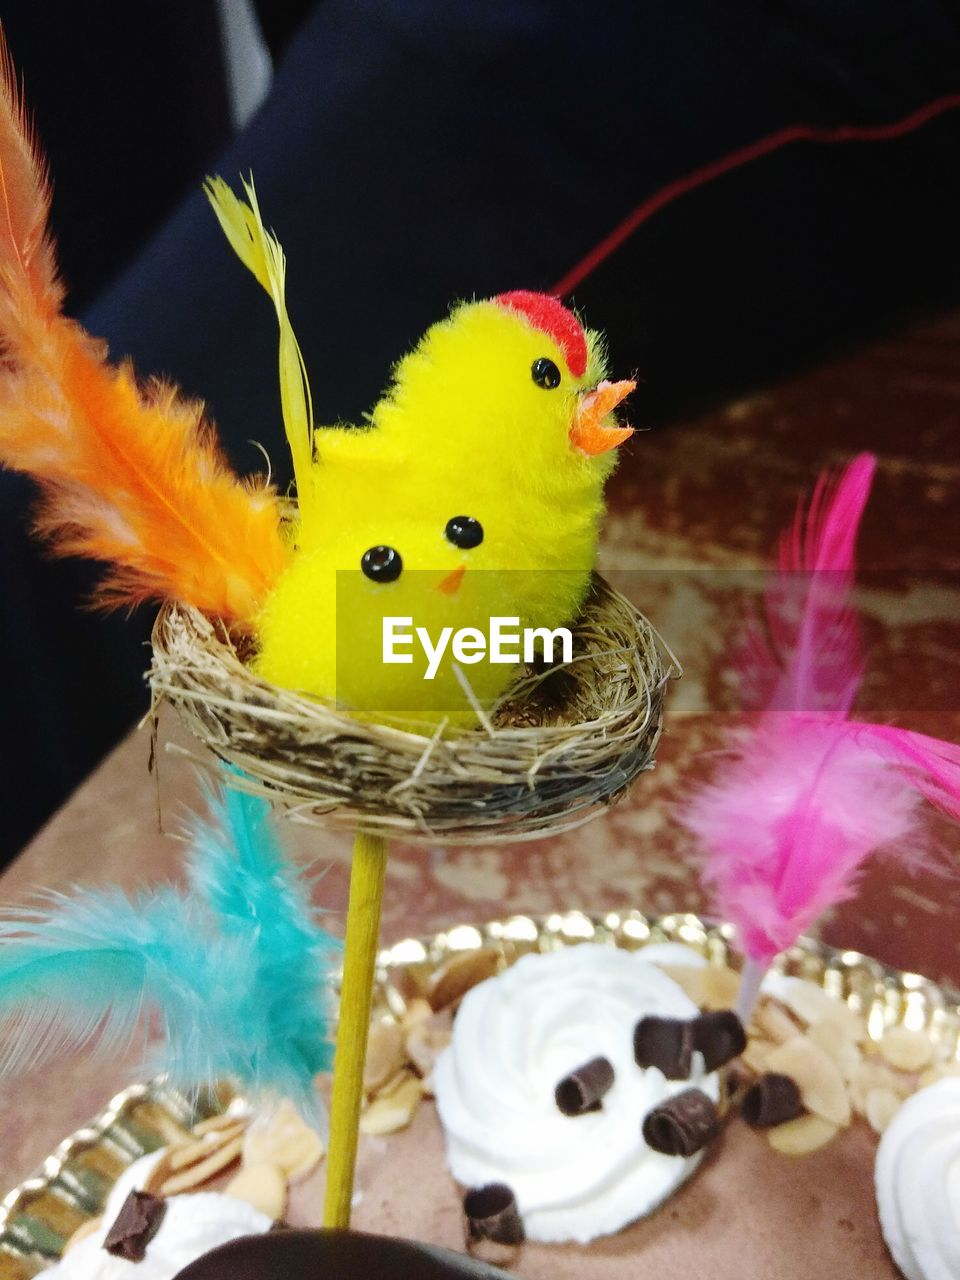 bird, animal themes, animal, vertebrate, indoors, close-up, no people, representation, animal representation, toy, yellow, young bird, stuffed toy, baby chicken, young animal, holiday, focus on foreground, group of animals, celebration, easter, beak, softness